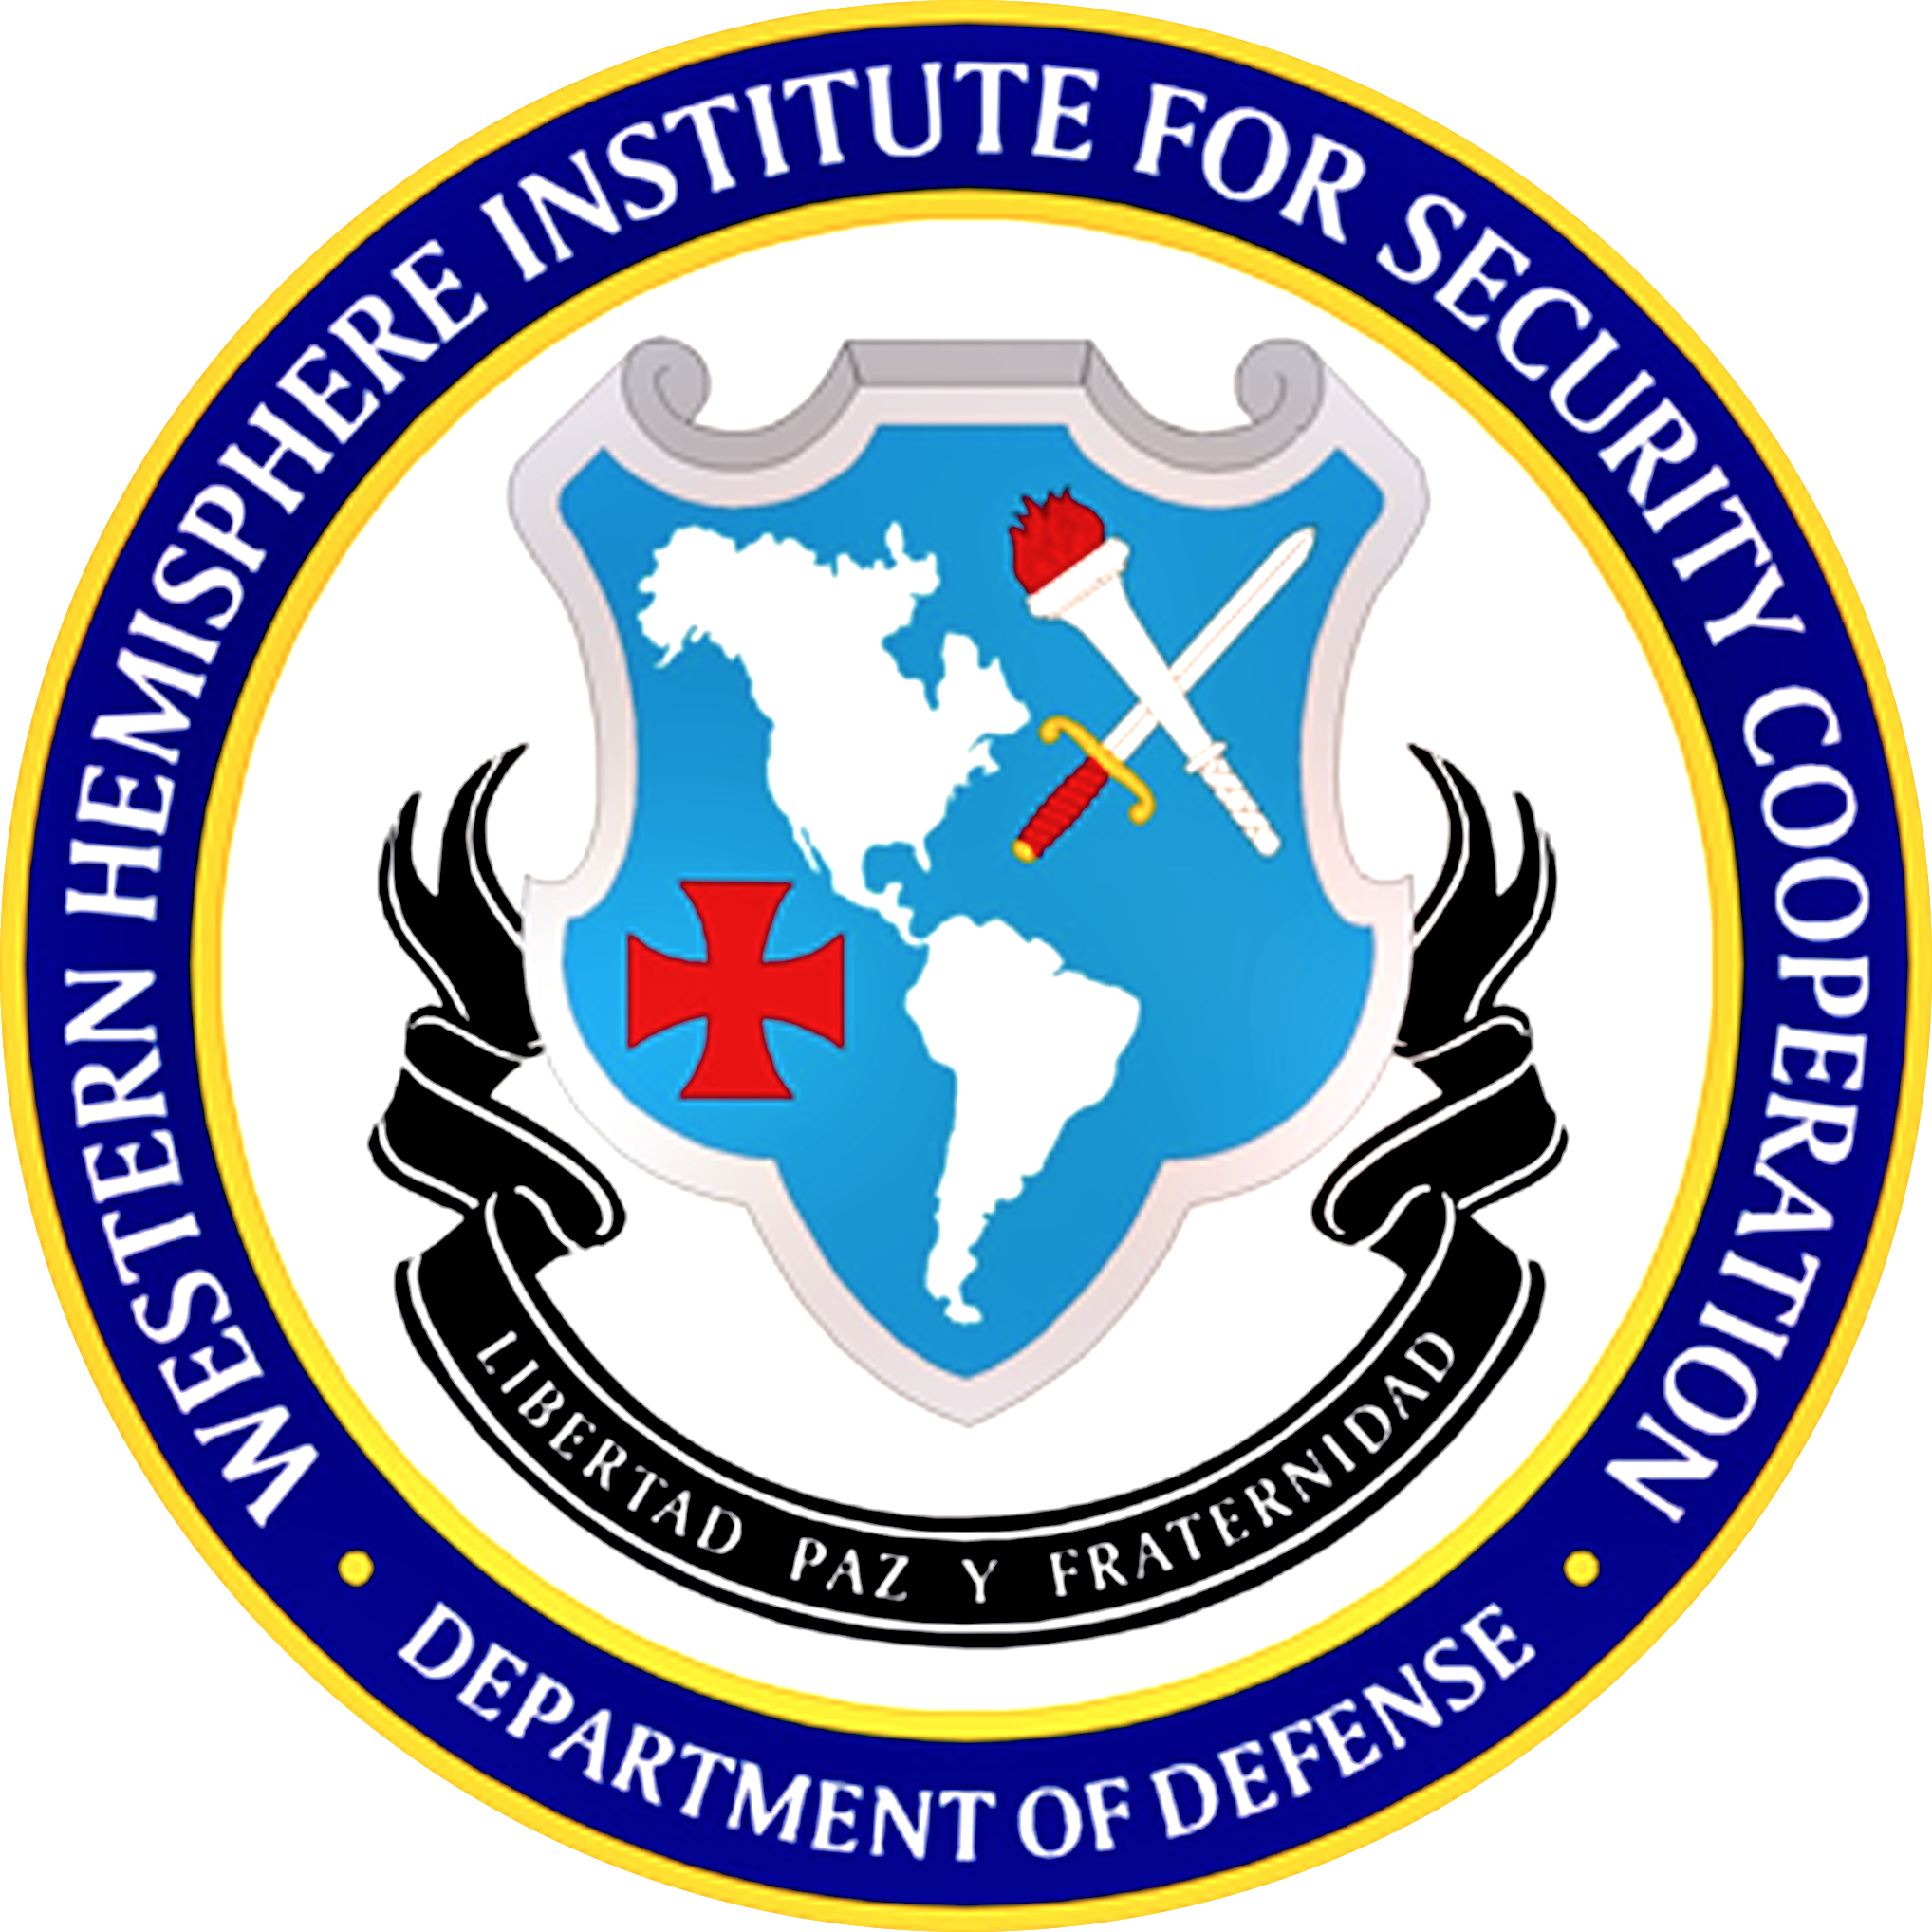 8d28d50d1 Western Hemisphere Institute for Security Cooperation - Wikipedia